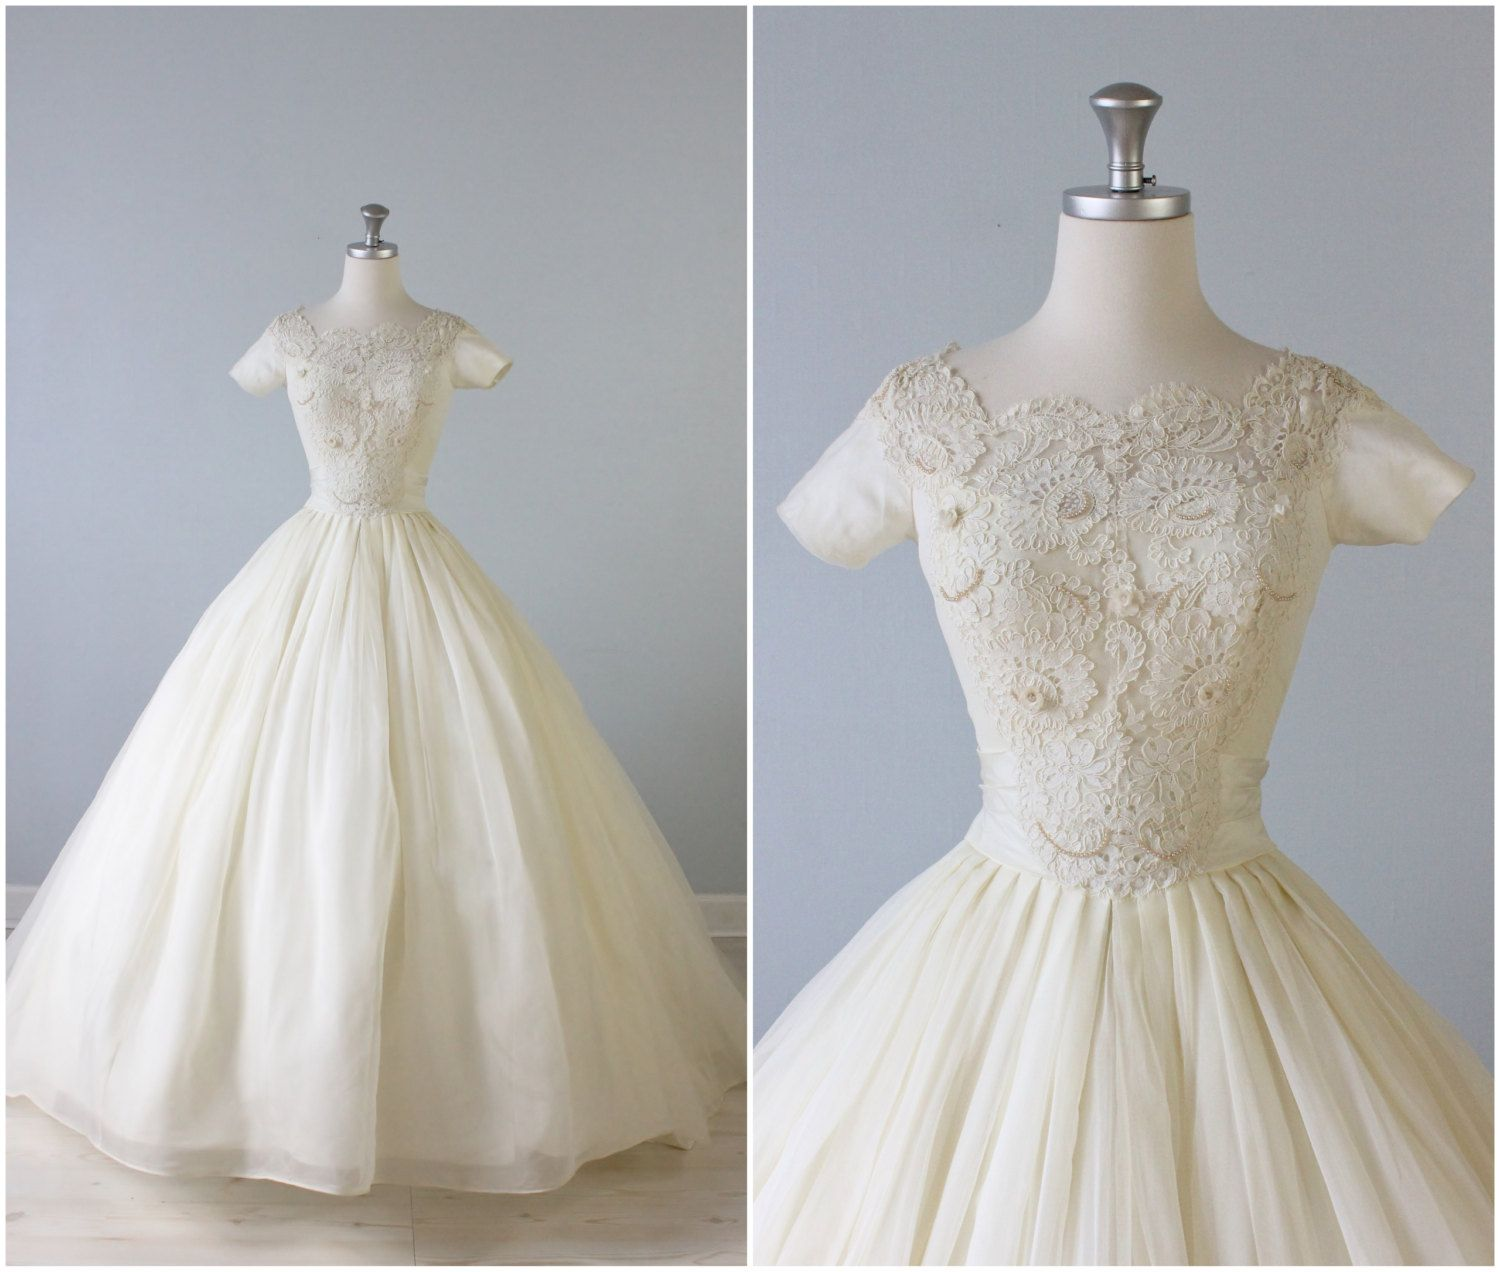 17 Best images about 1950s Wedding Gowns on Pinterest  Wedding ...